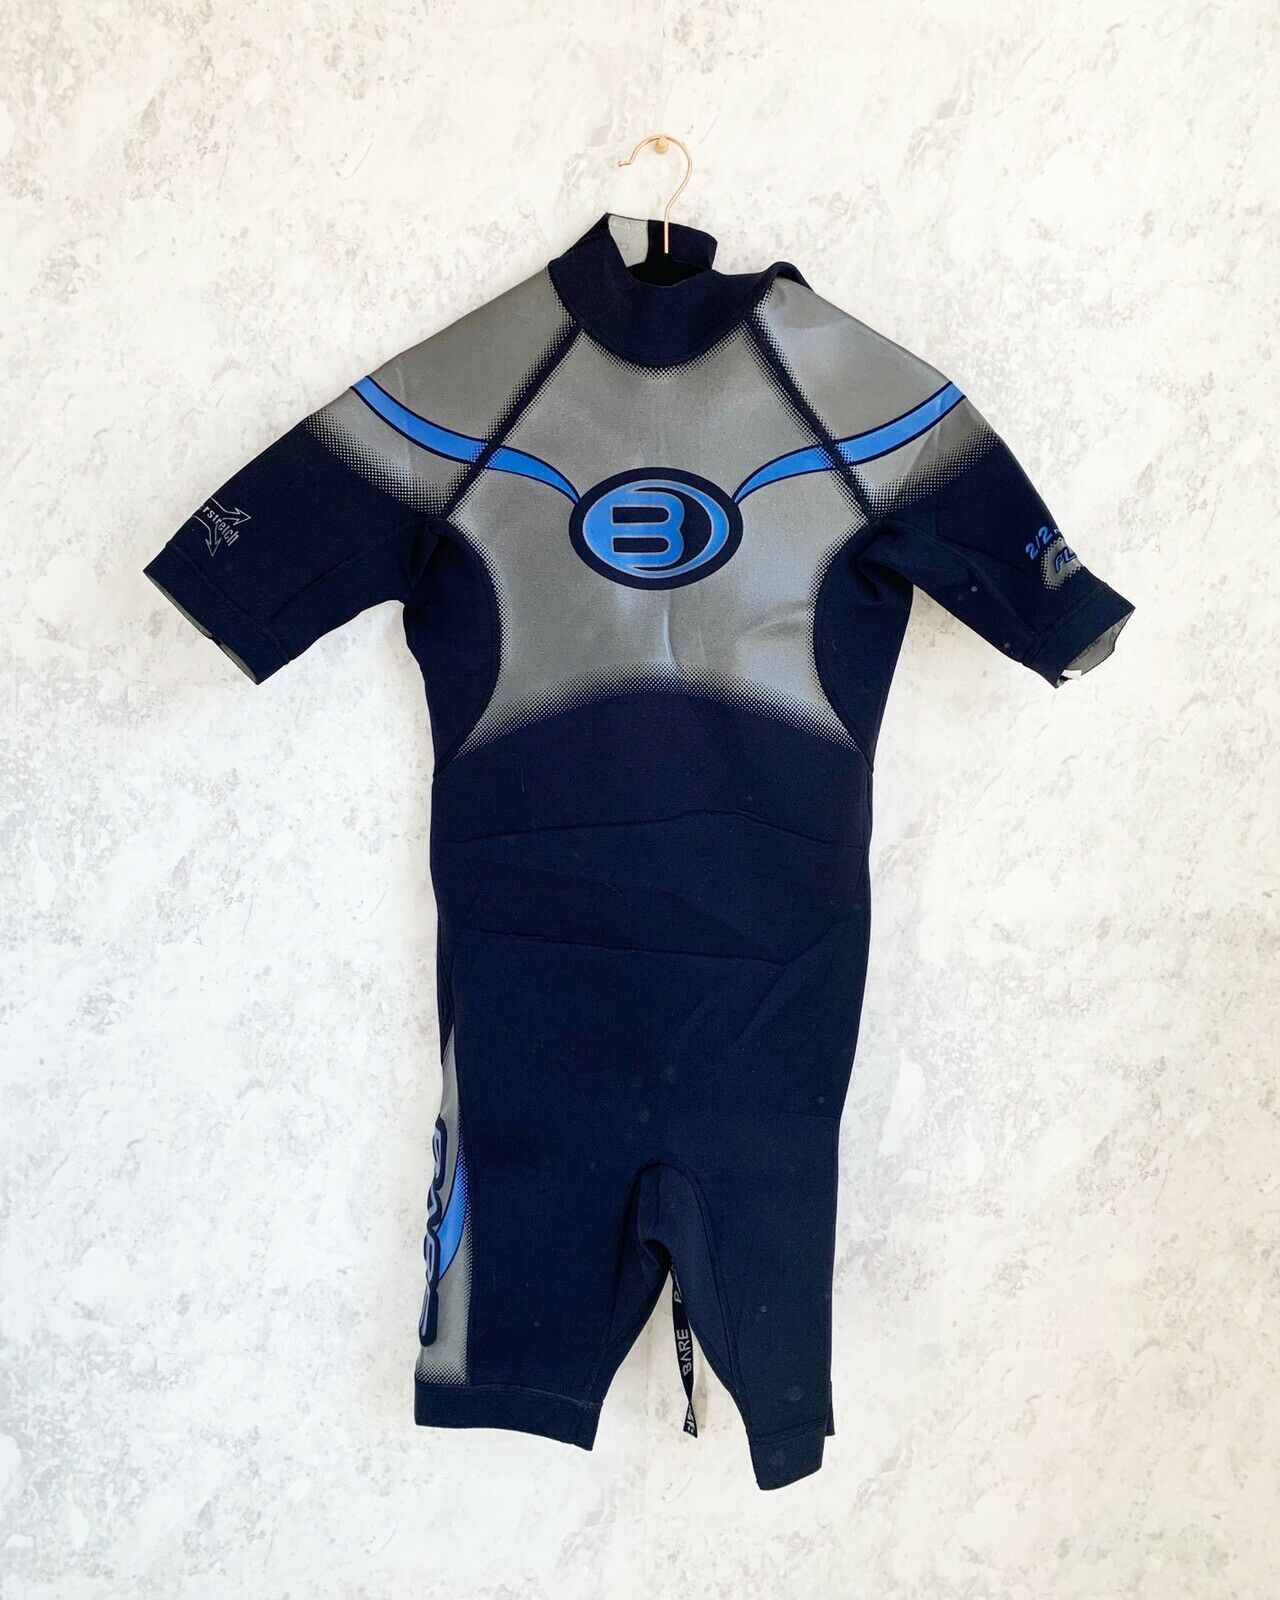 Bare  Mens Wetsuit 2 2mm Plazma Powerstretch Surfing Snorkeling Scuba Blk Size M  sale with high discount